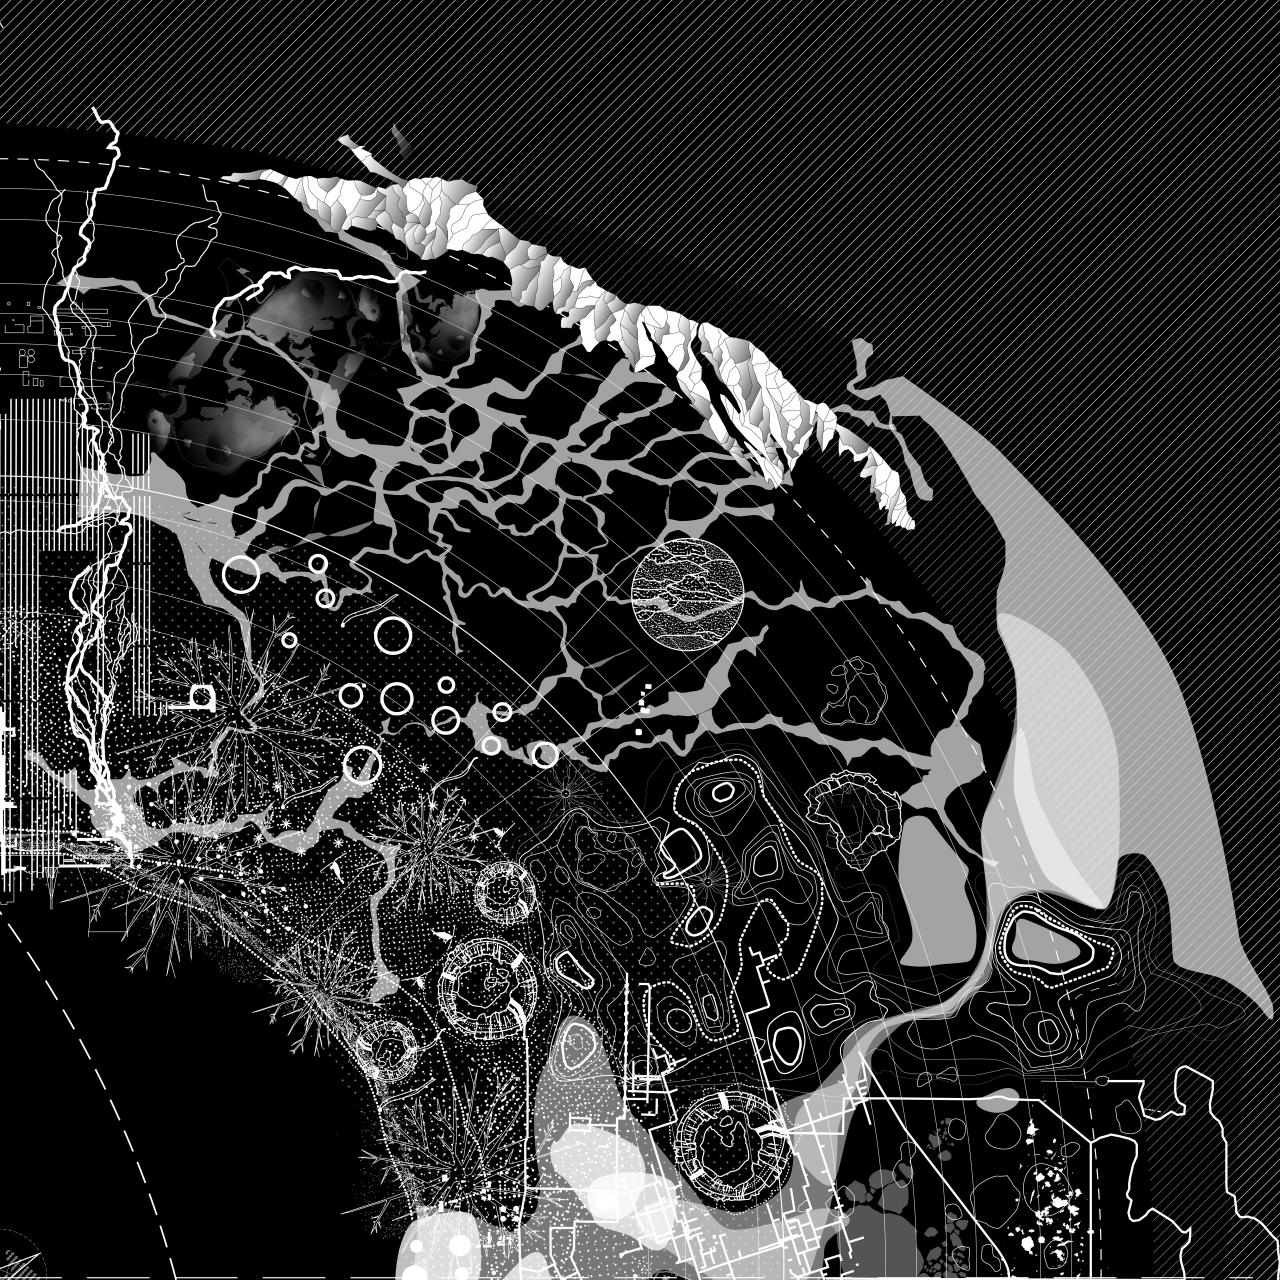 Abstract map in black and white for the exhibition »Critical Zones« by Bruno Latour